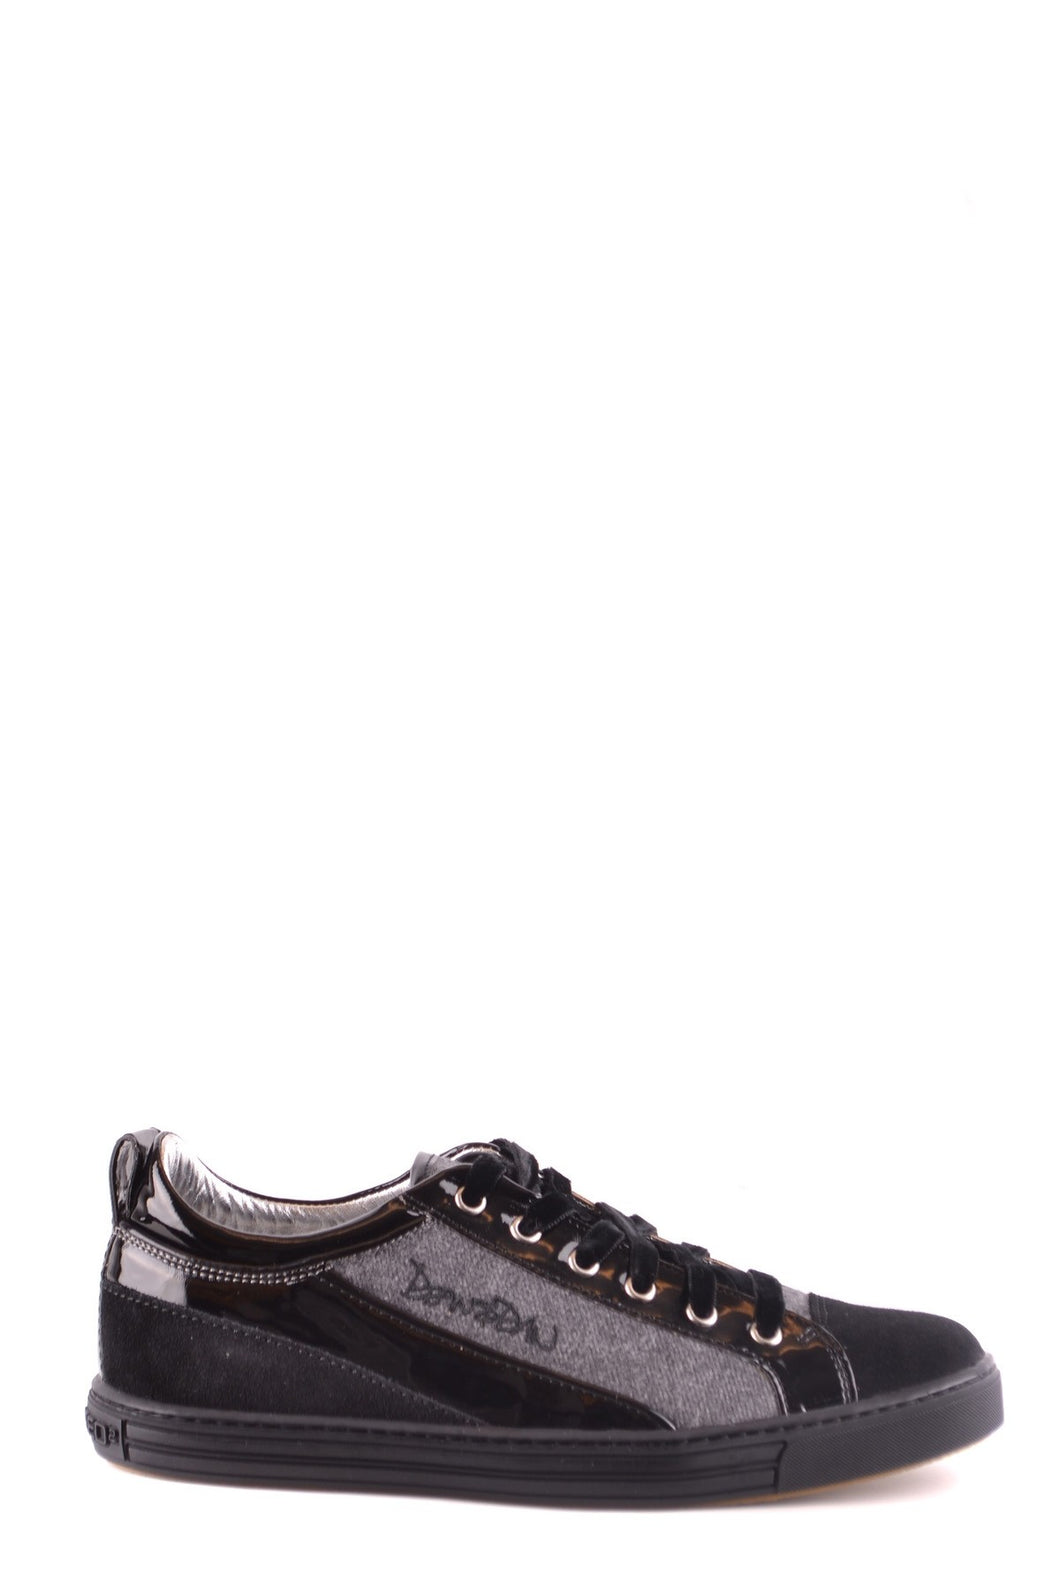 Dsquared Sneakers Donna - Universalbrand